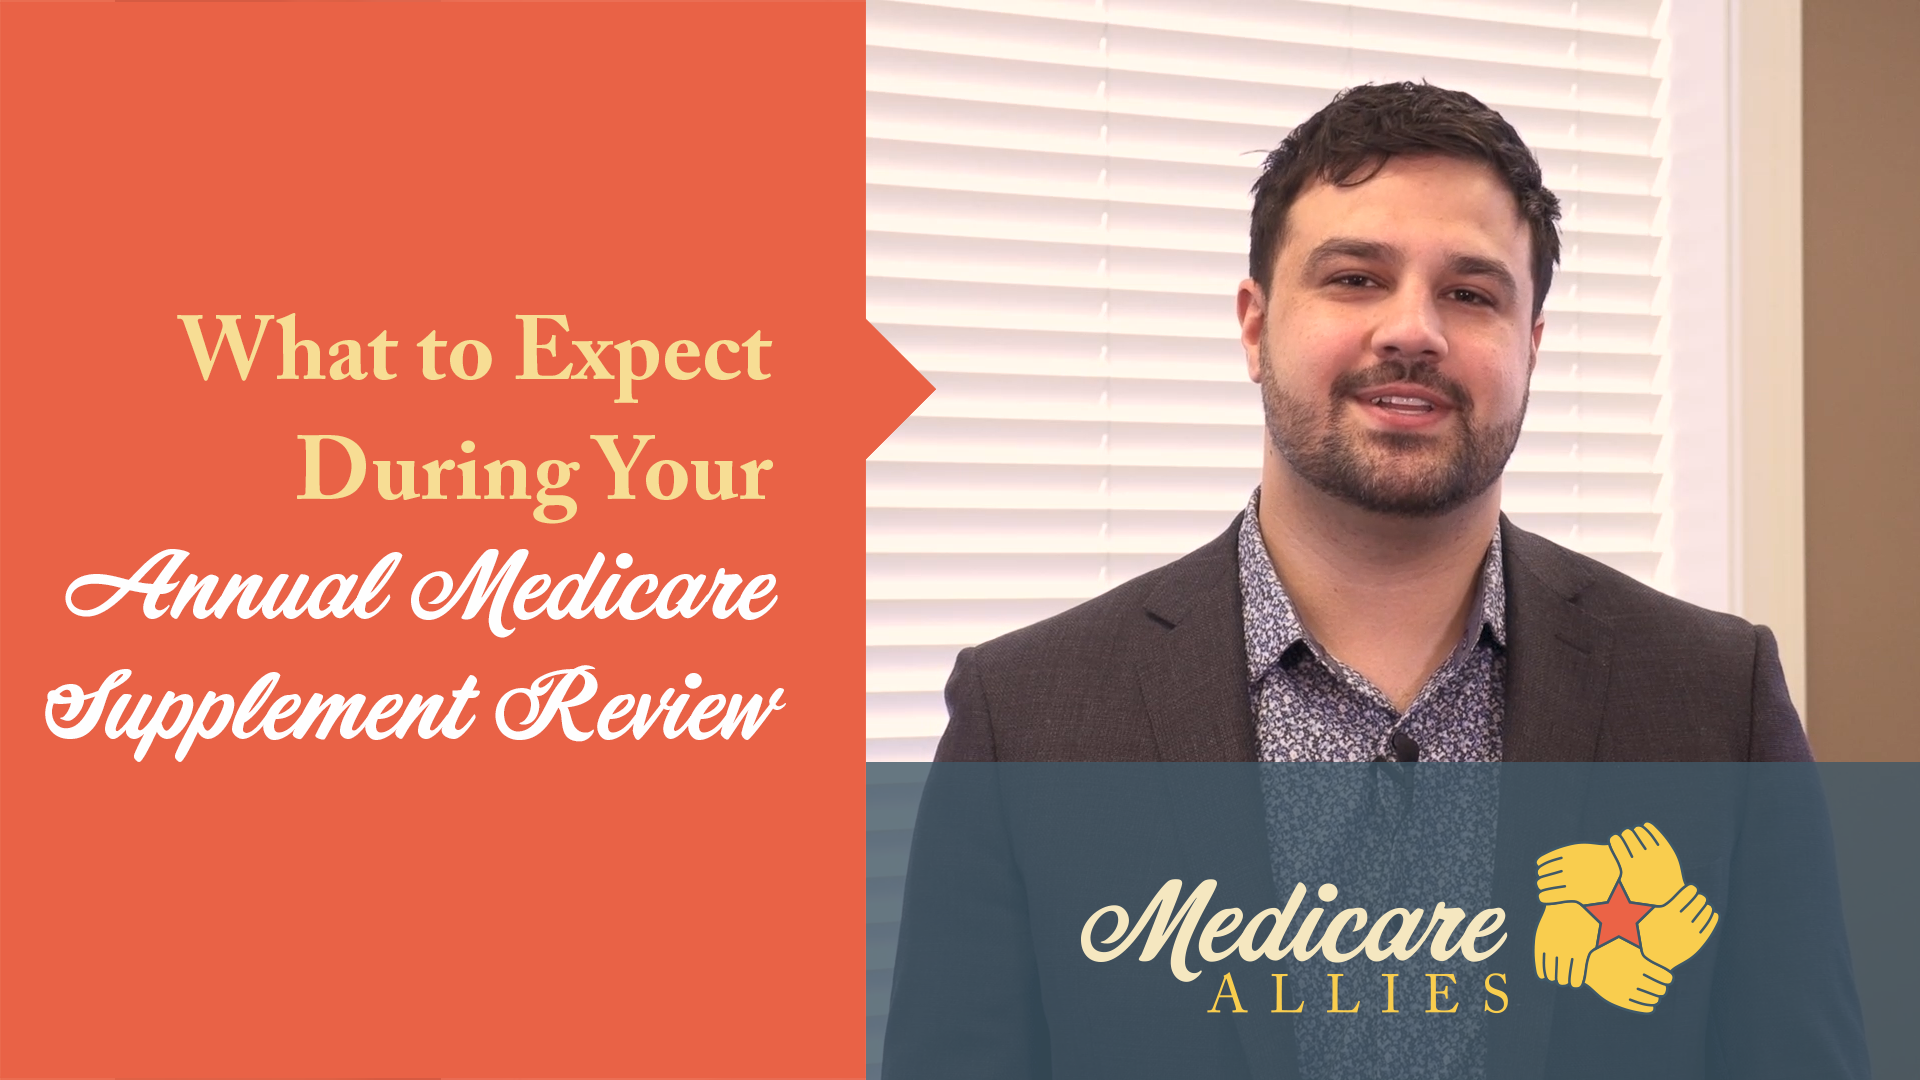 What to Expect During Your Annual Medicare Supplement Review